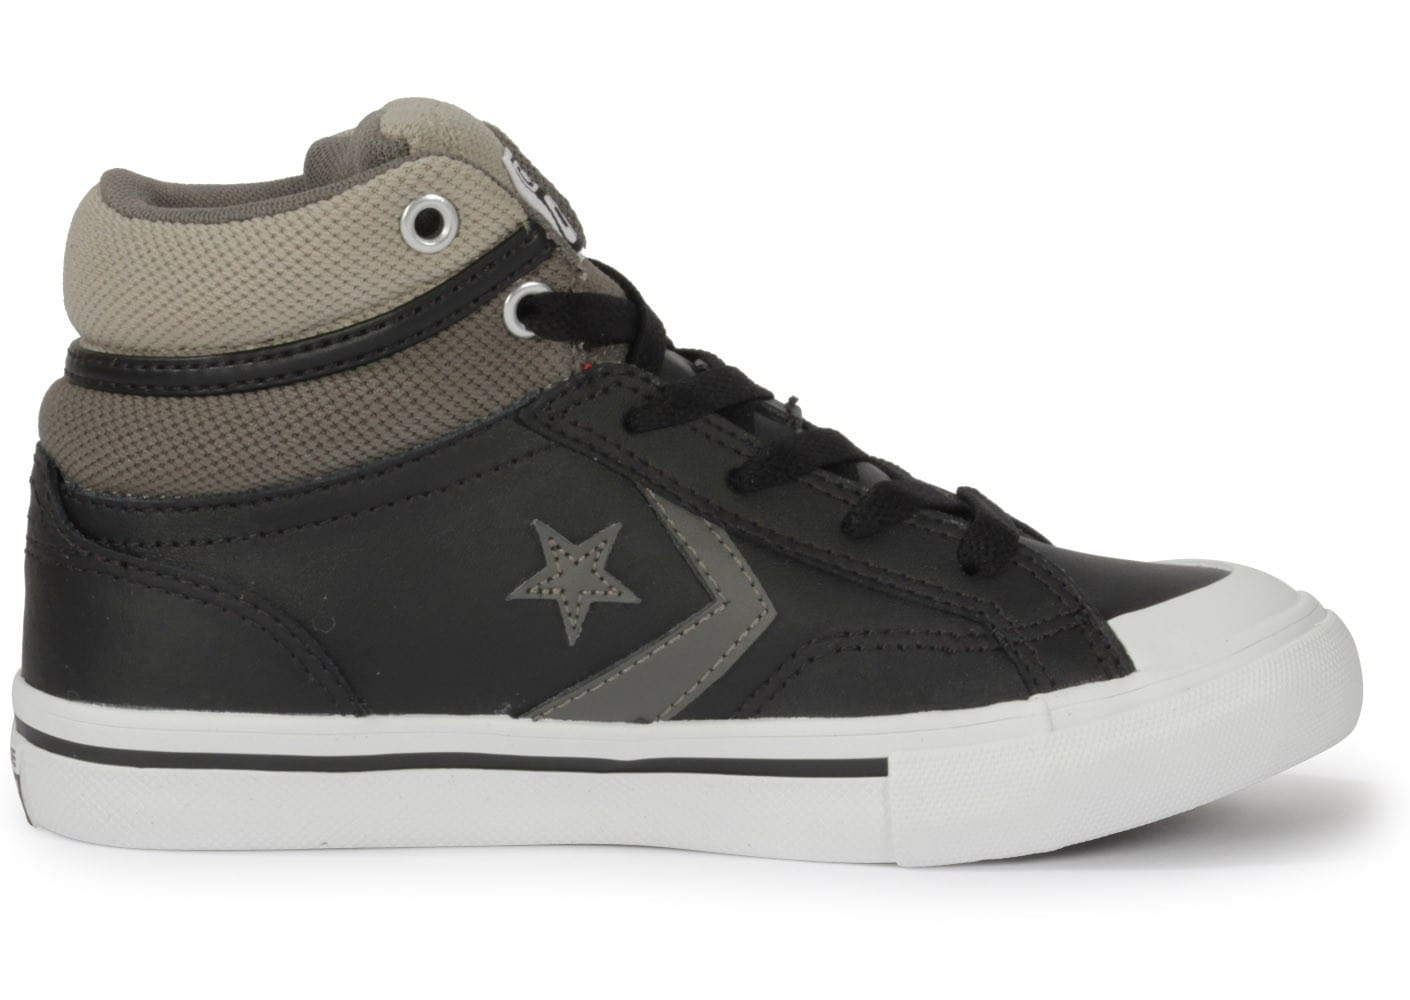 chaussure converse cuir enfant,grossiste chaussure converse